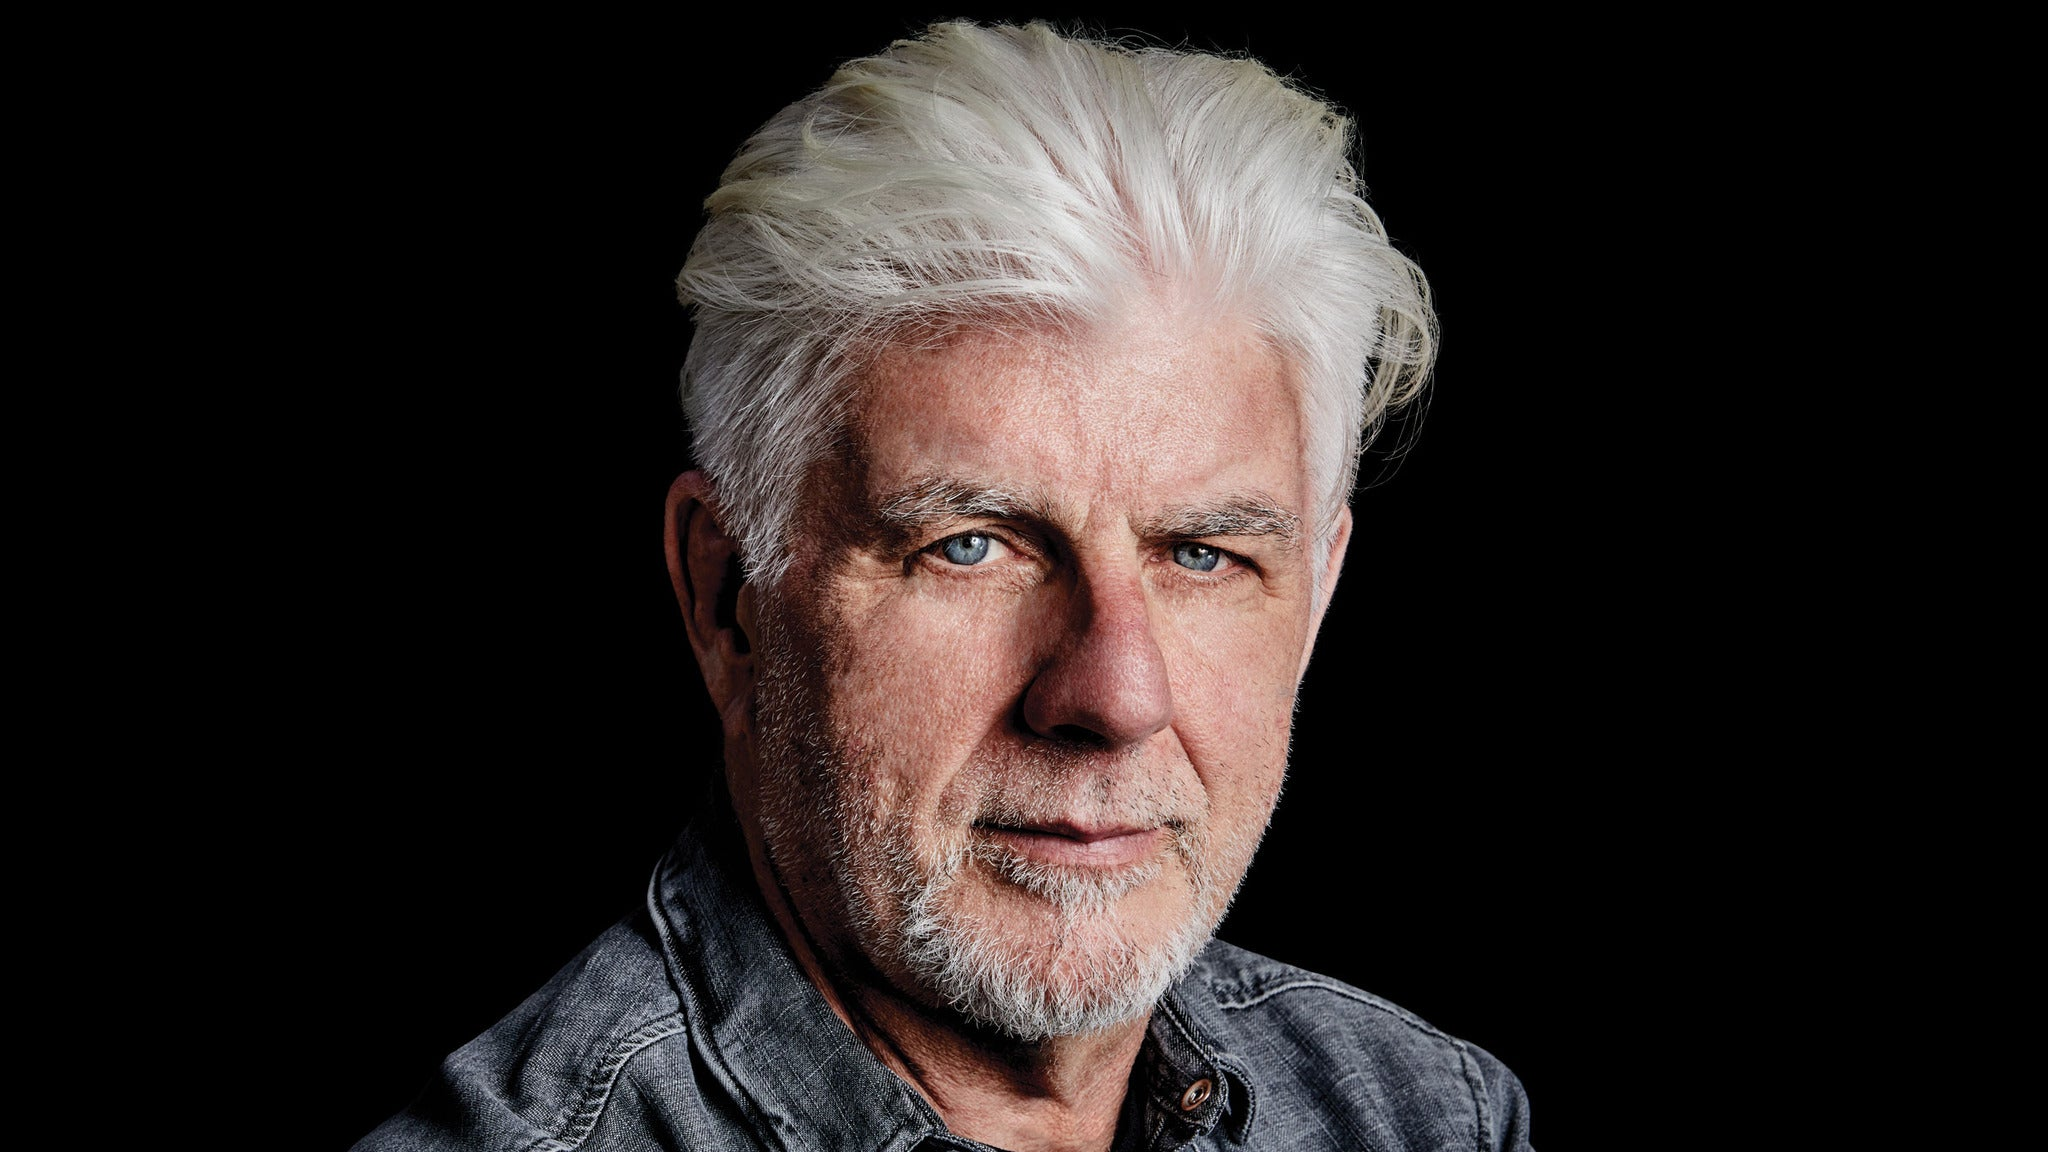 Michael McDonald at The Peabody Daytona Beach